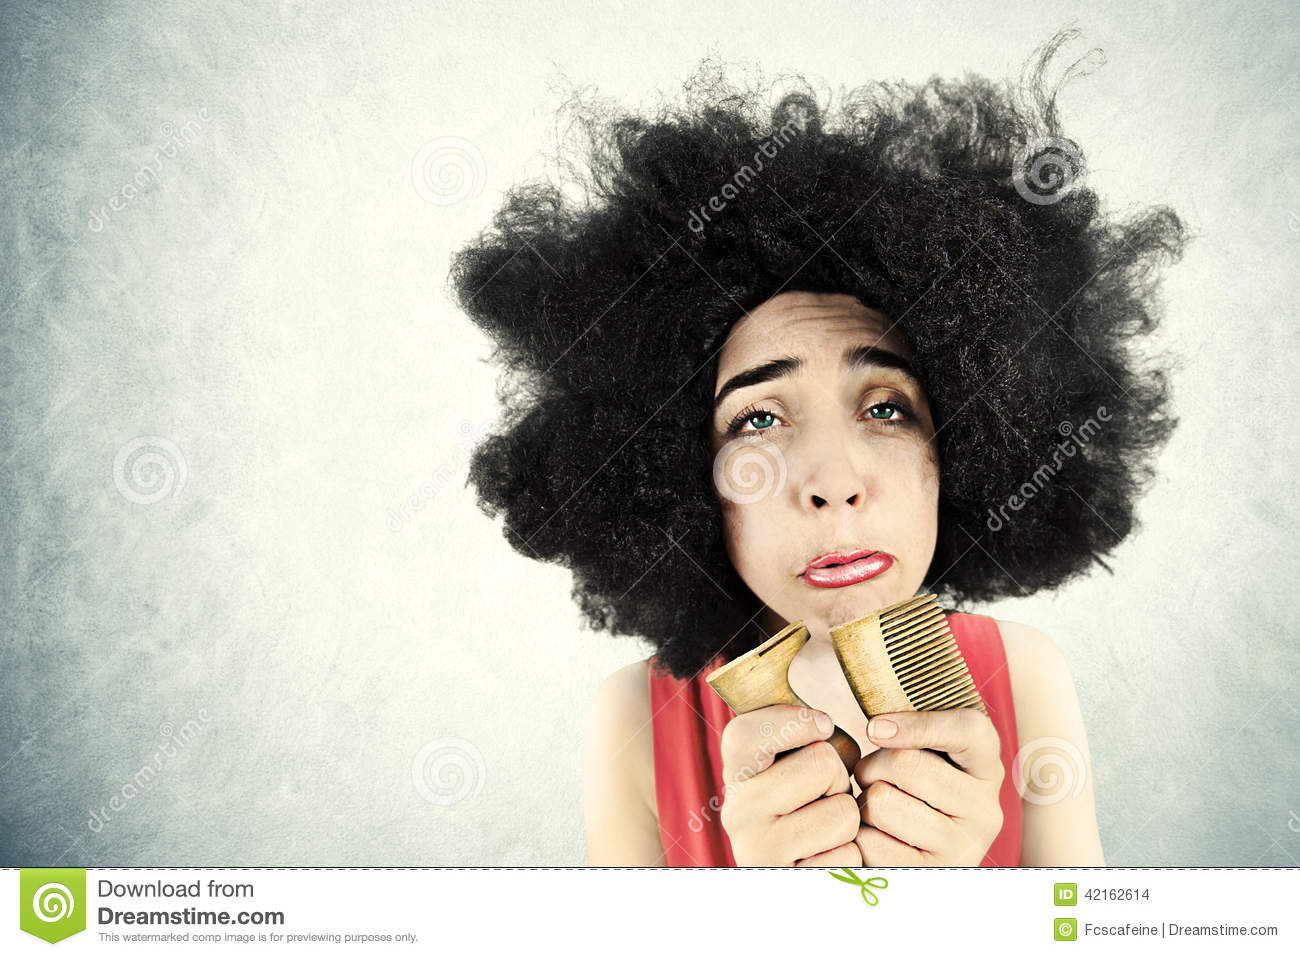 Desperate to use the bathroom - Desperate Woman Can T Comb Her Hair Because She Broke Her Comb Stock Photo